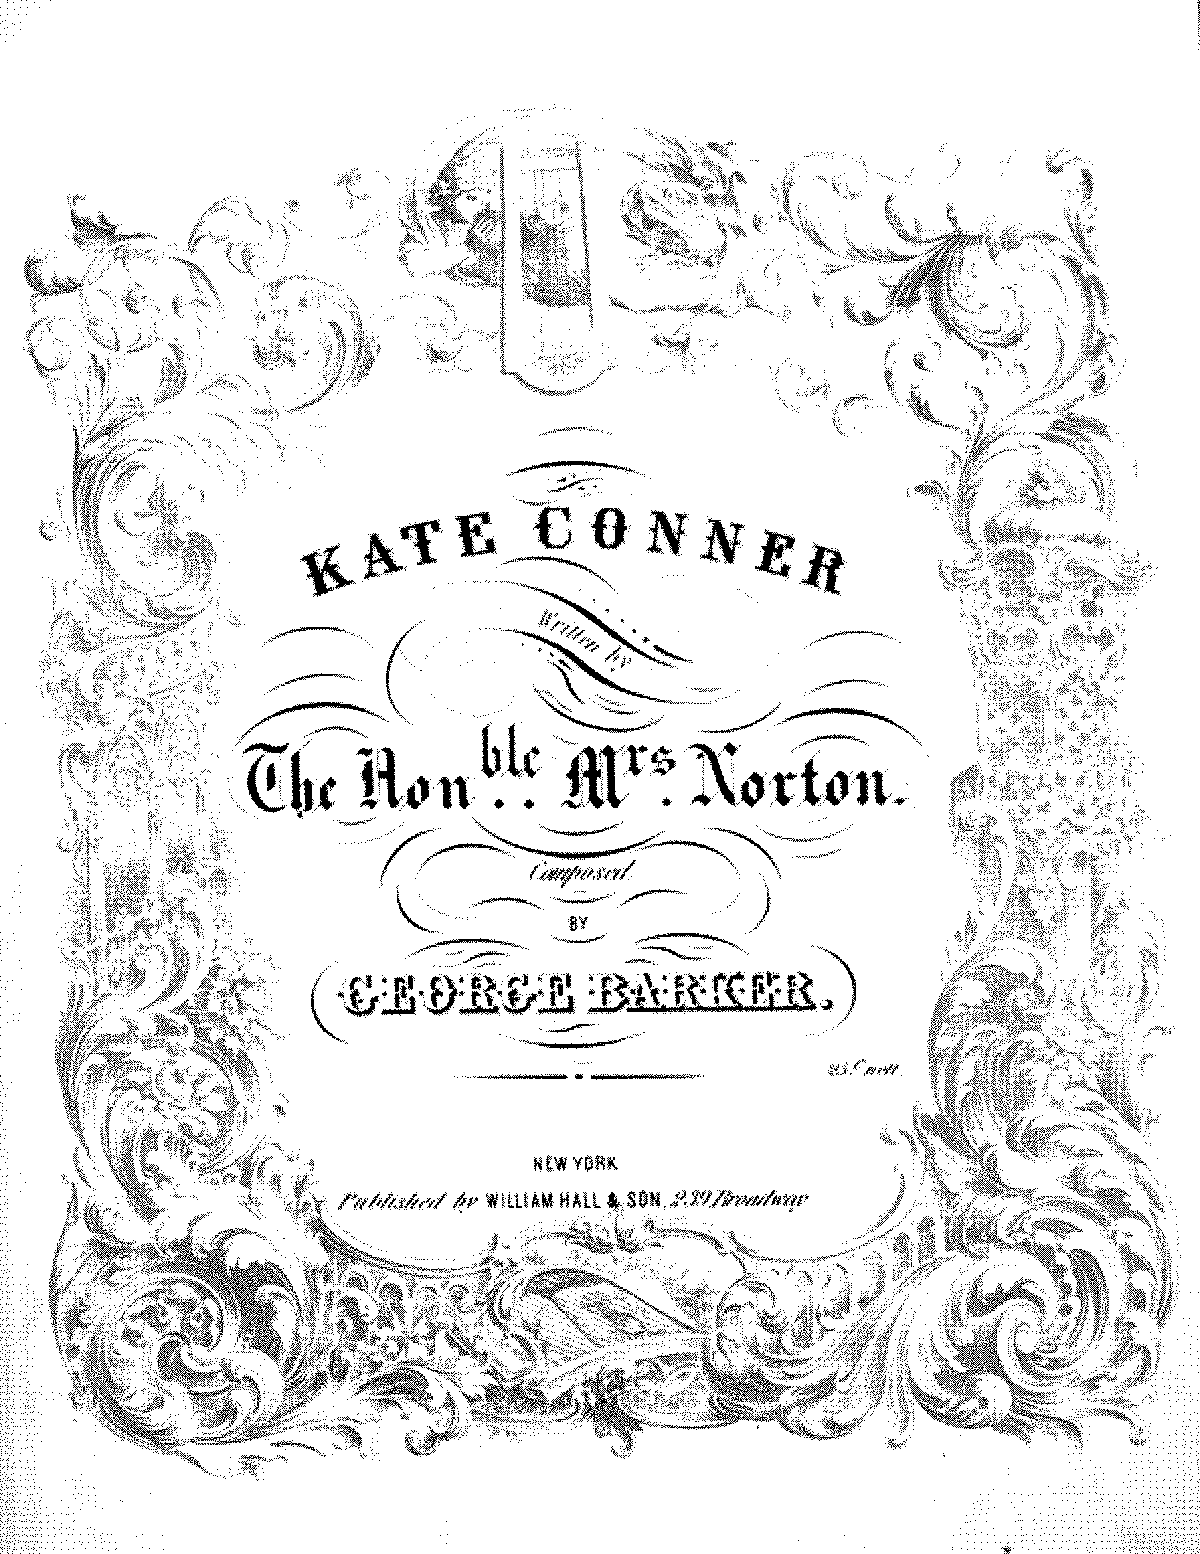 PMLP512493-Barker Kate Conner -Hall & Son-.pdf